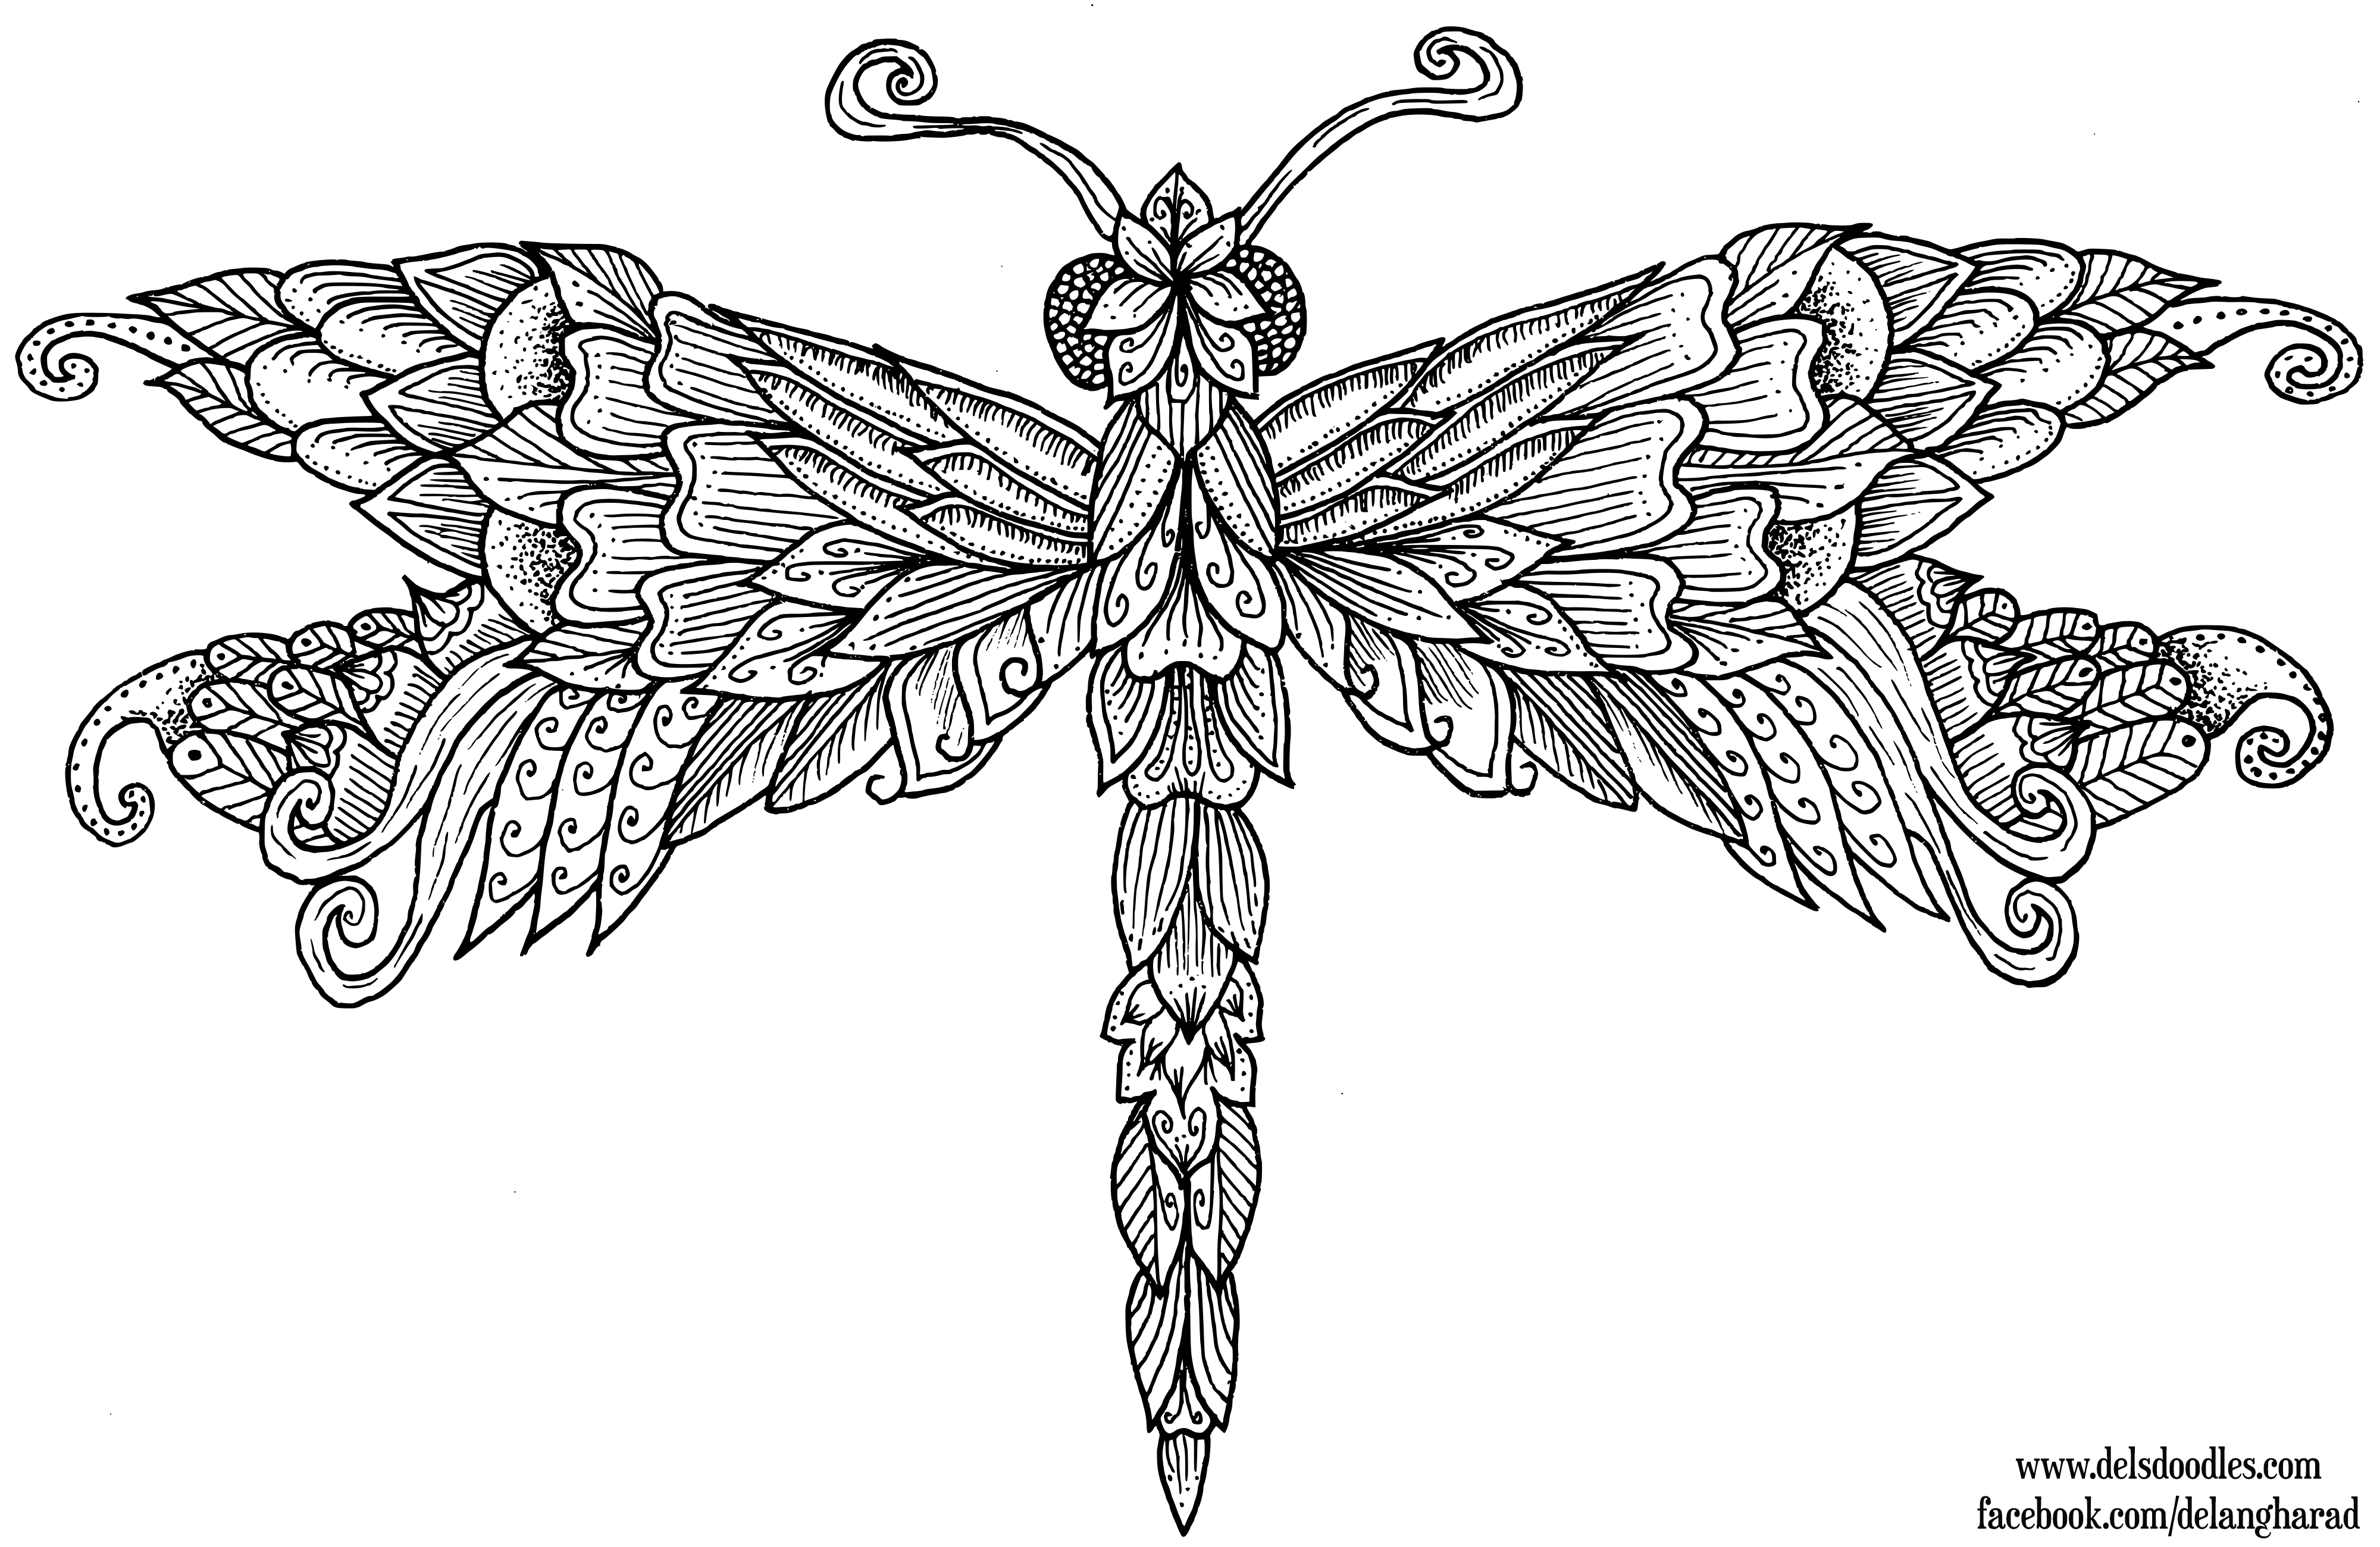 dragonfly colouring page dragonflies adult coloring page digital stamp dragonfly page colouring